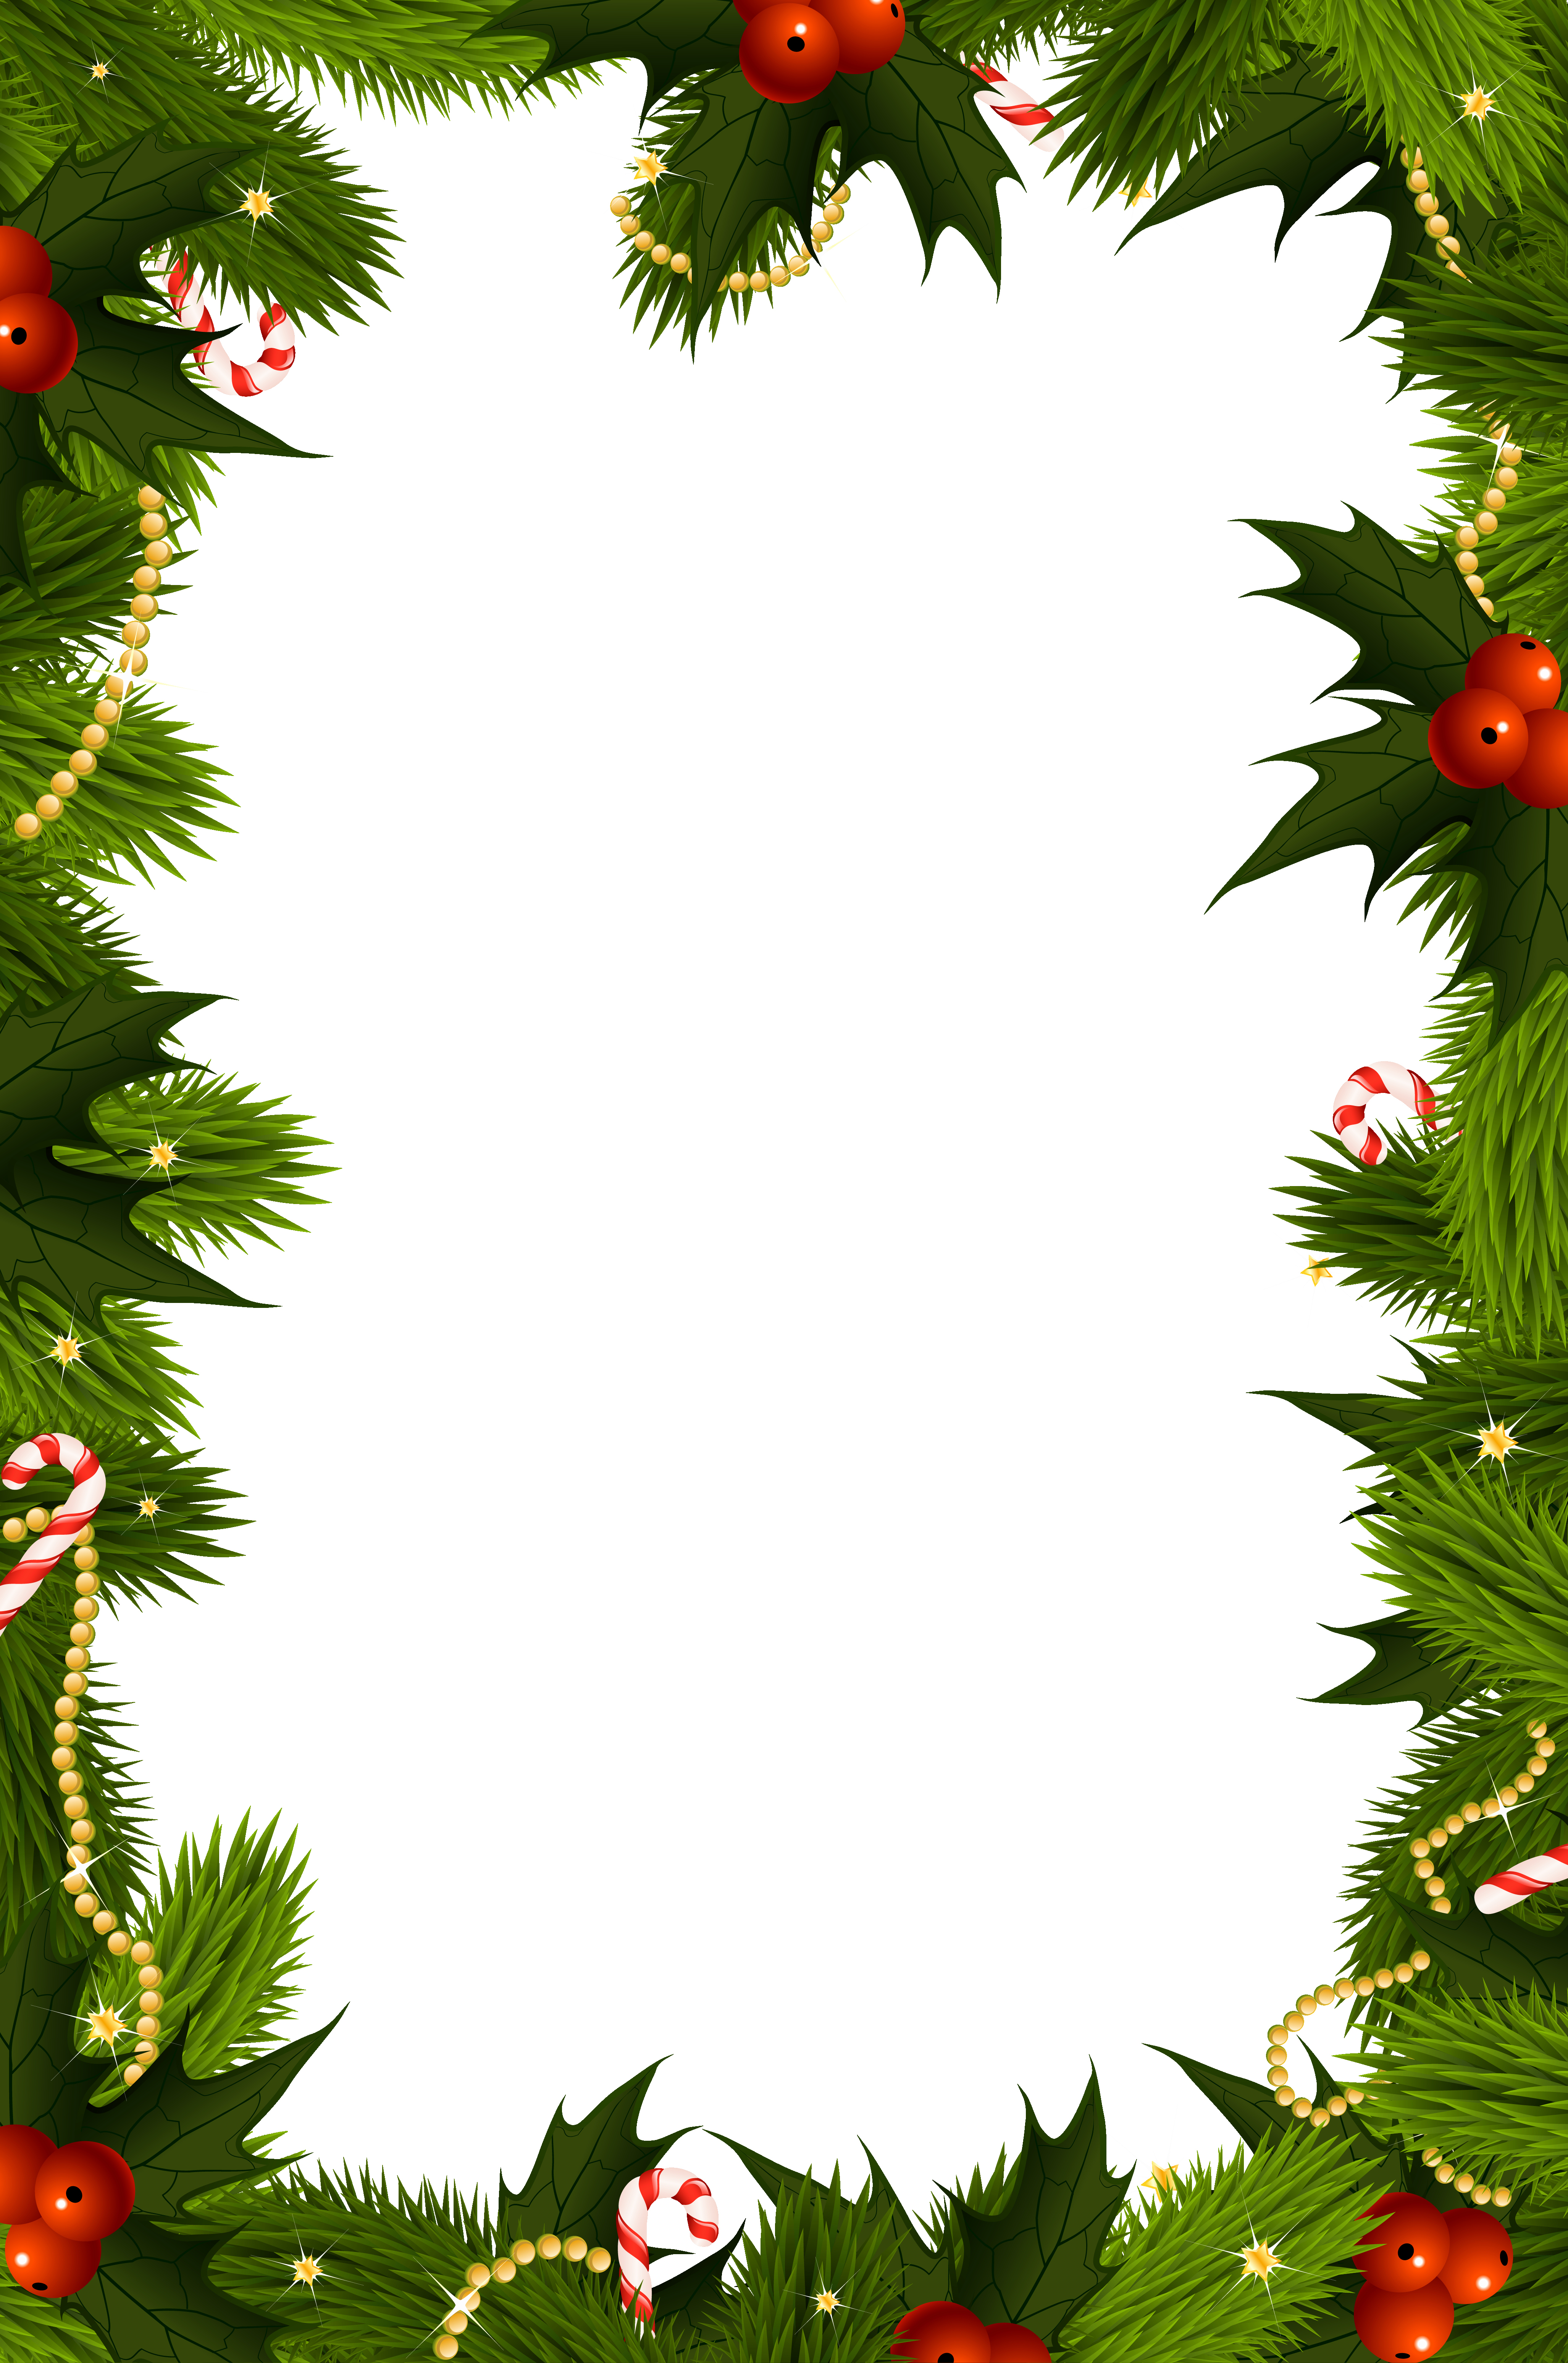 Festive Borders for Word Document Beautiful Transparent Christmas Border – Happy Holidays